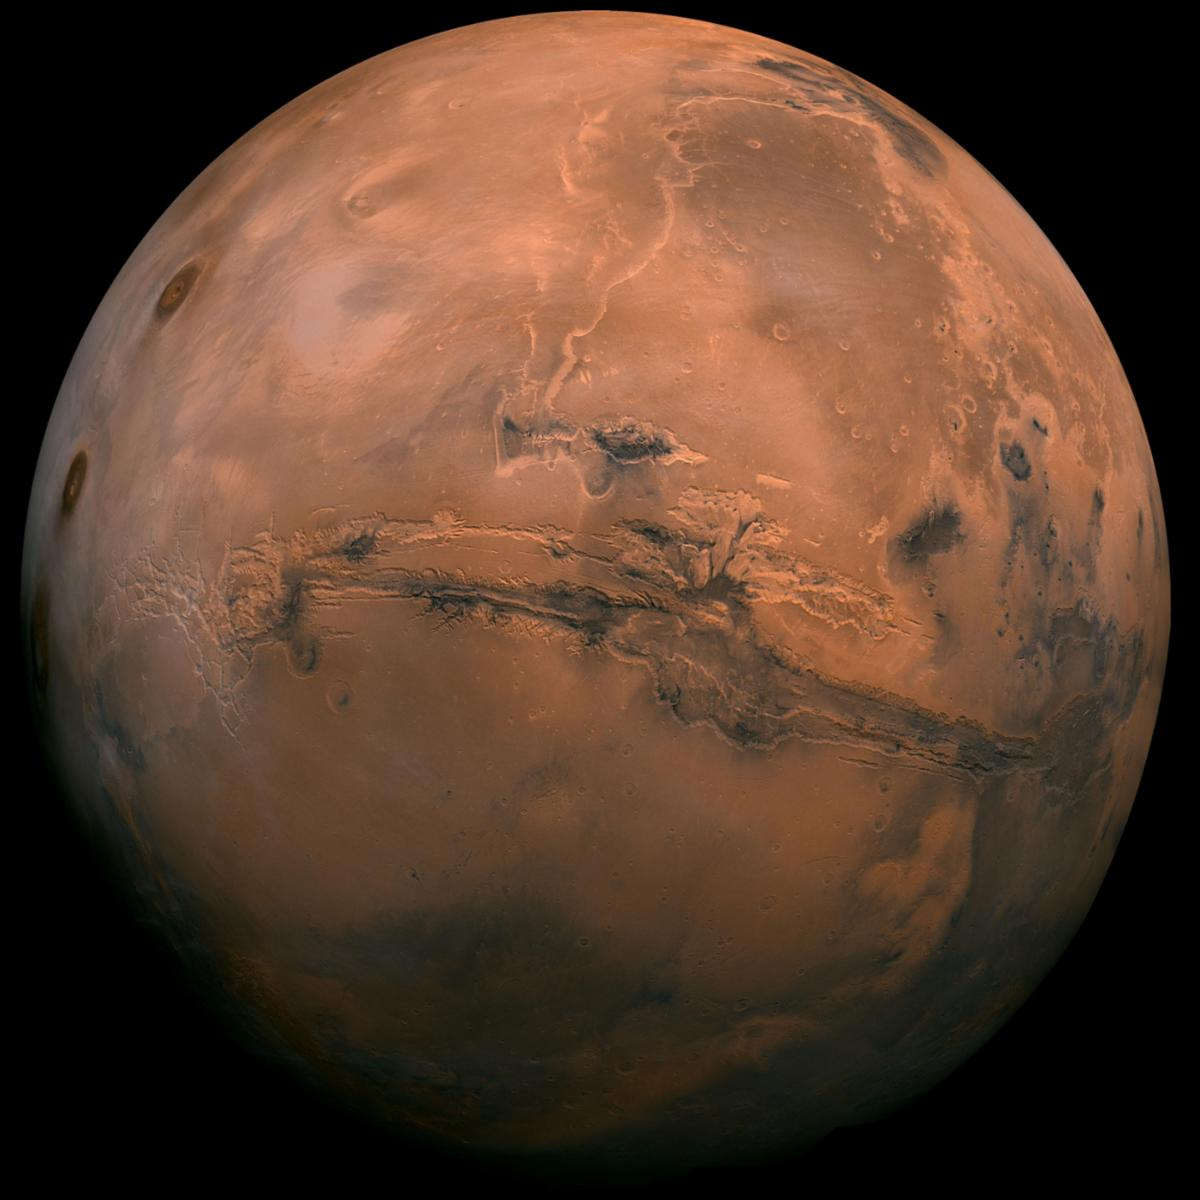 Planet Mars may have supported life long time ago